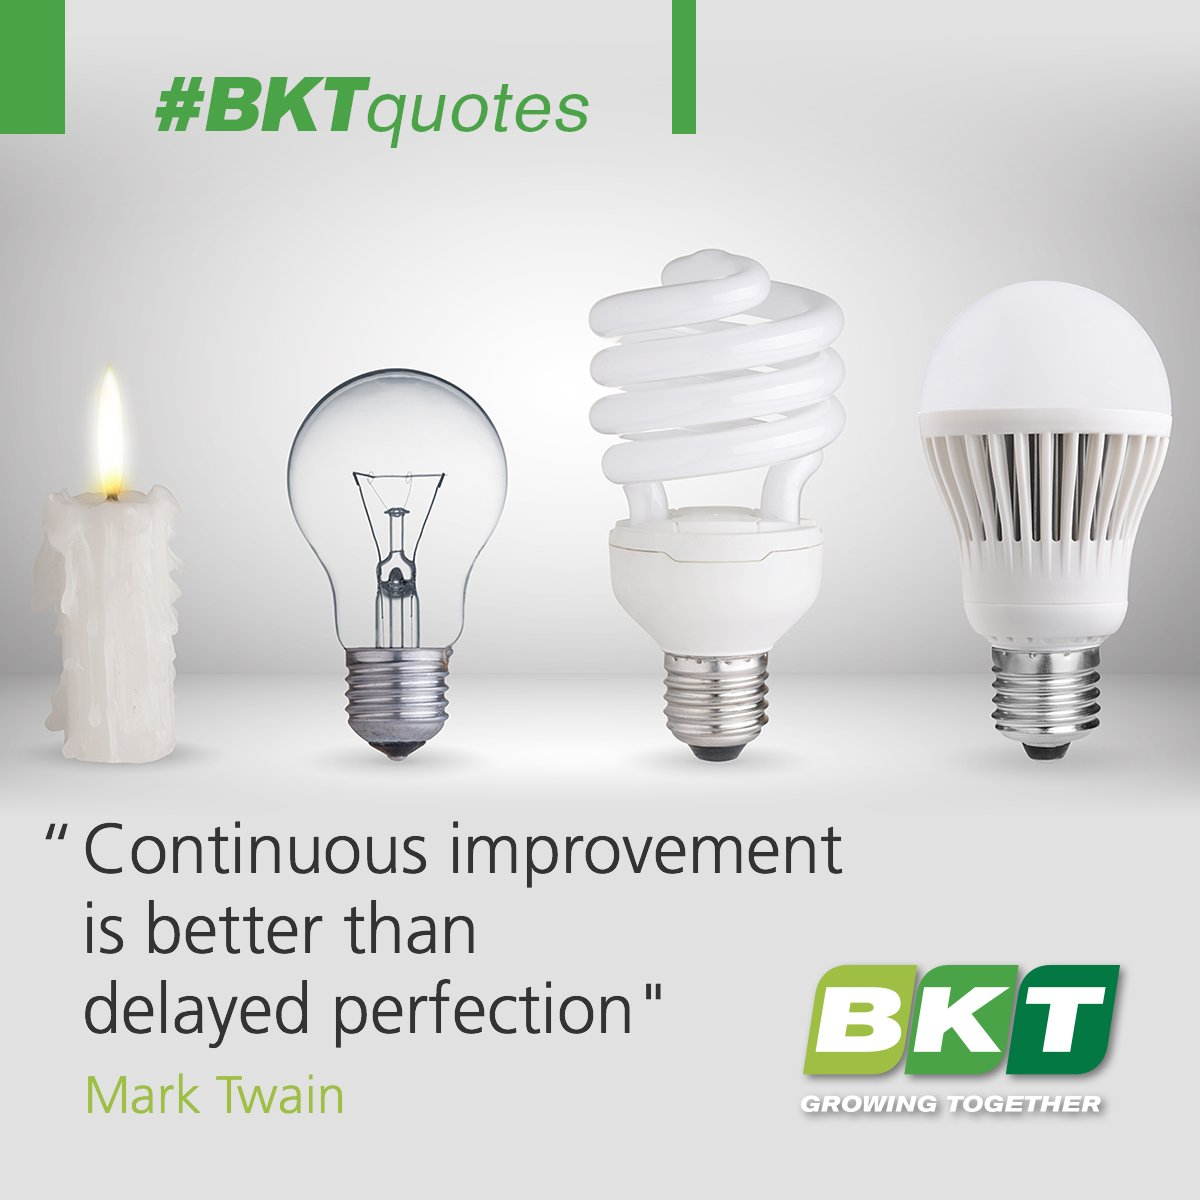 Always keep going forward! #BKTquotes #quote #quoteoftheday https://t.co/AI1hDRPrYI